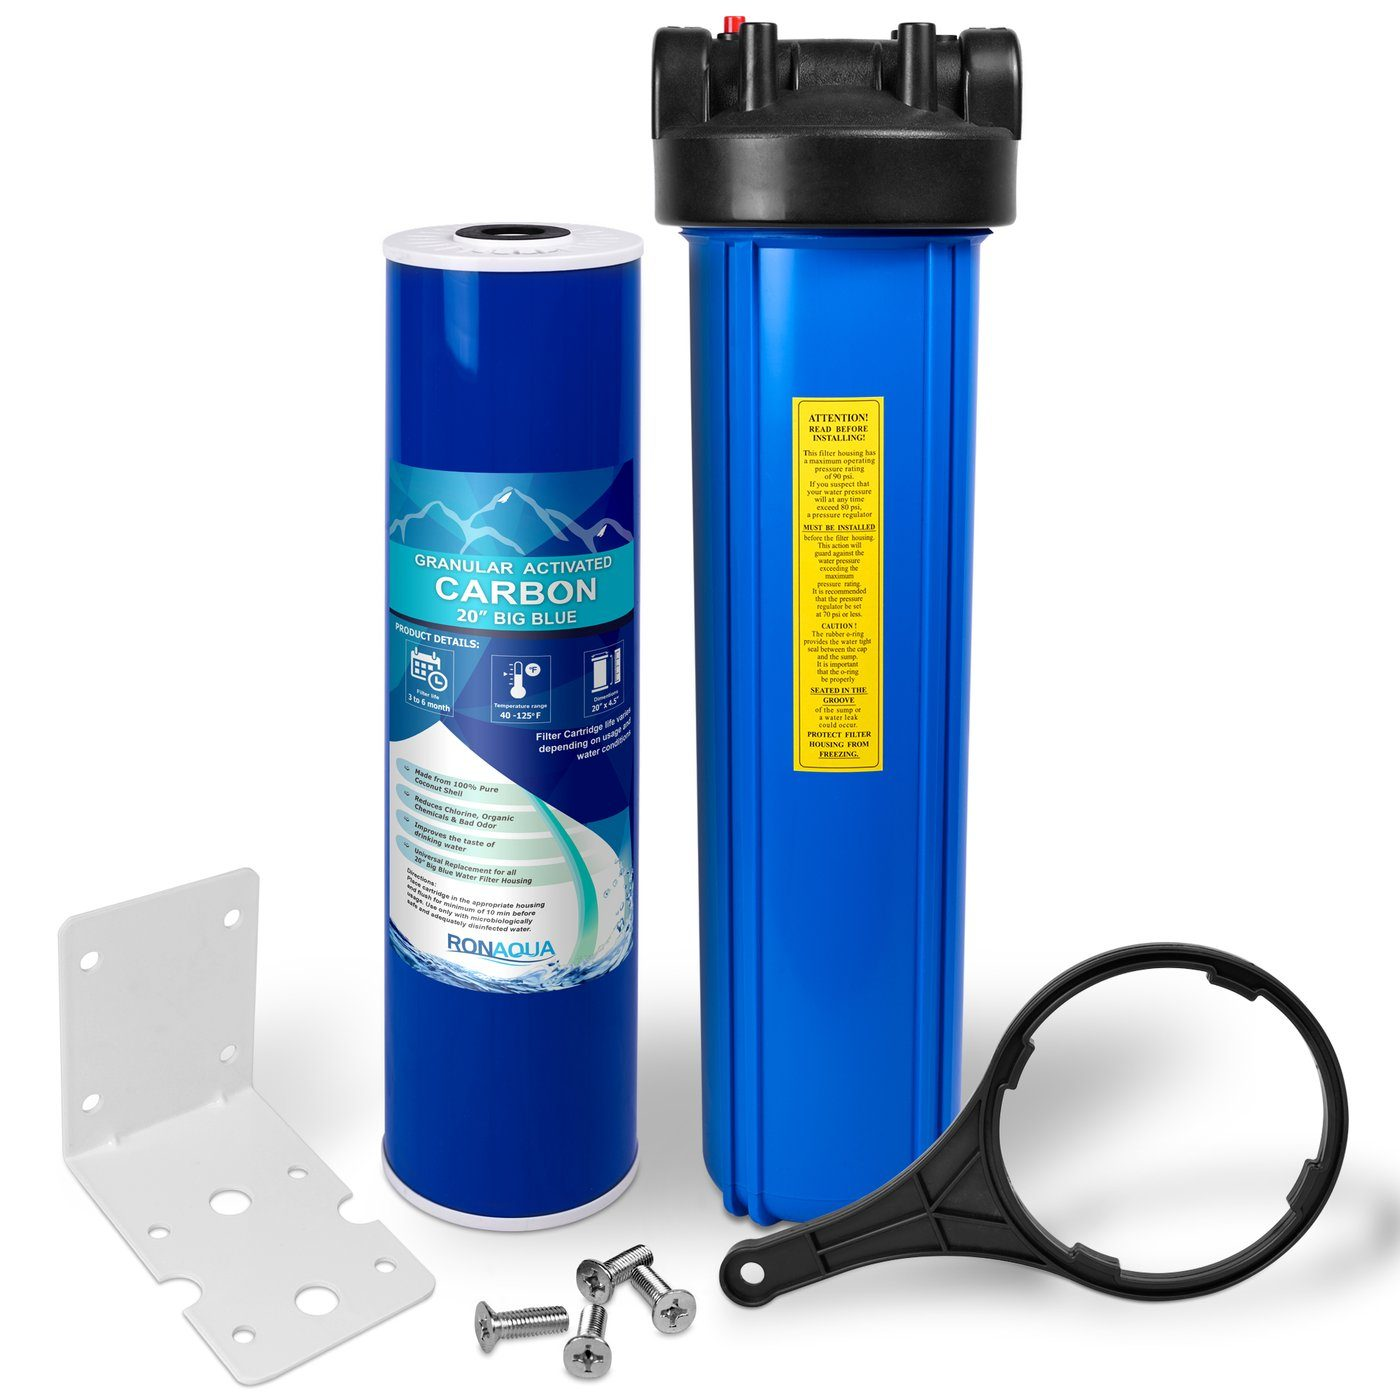 20 Inch Big Blue Granular Activated Carbon Whole House Water Filter